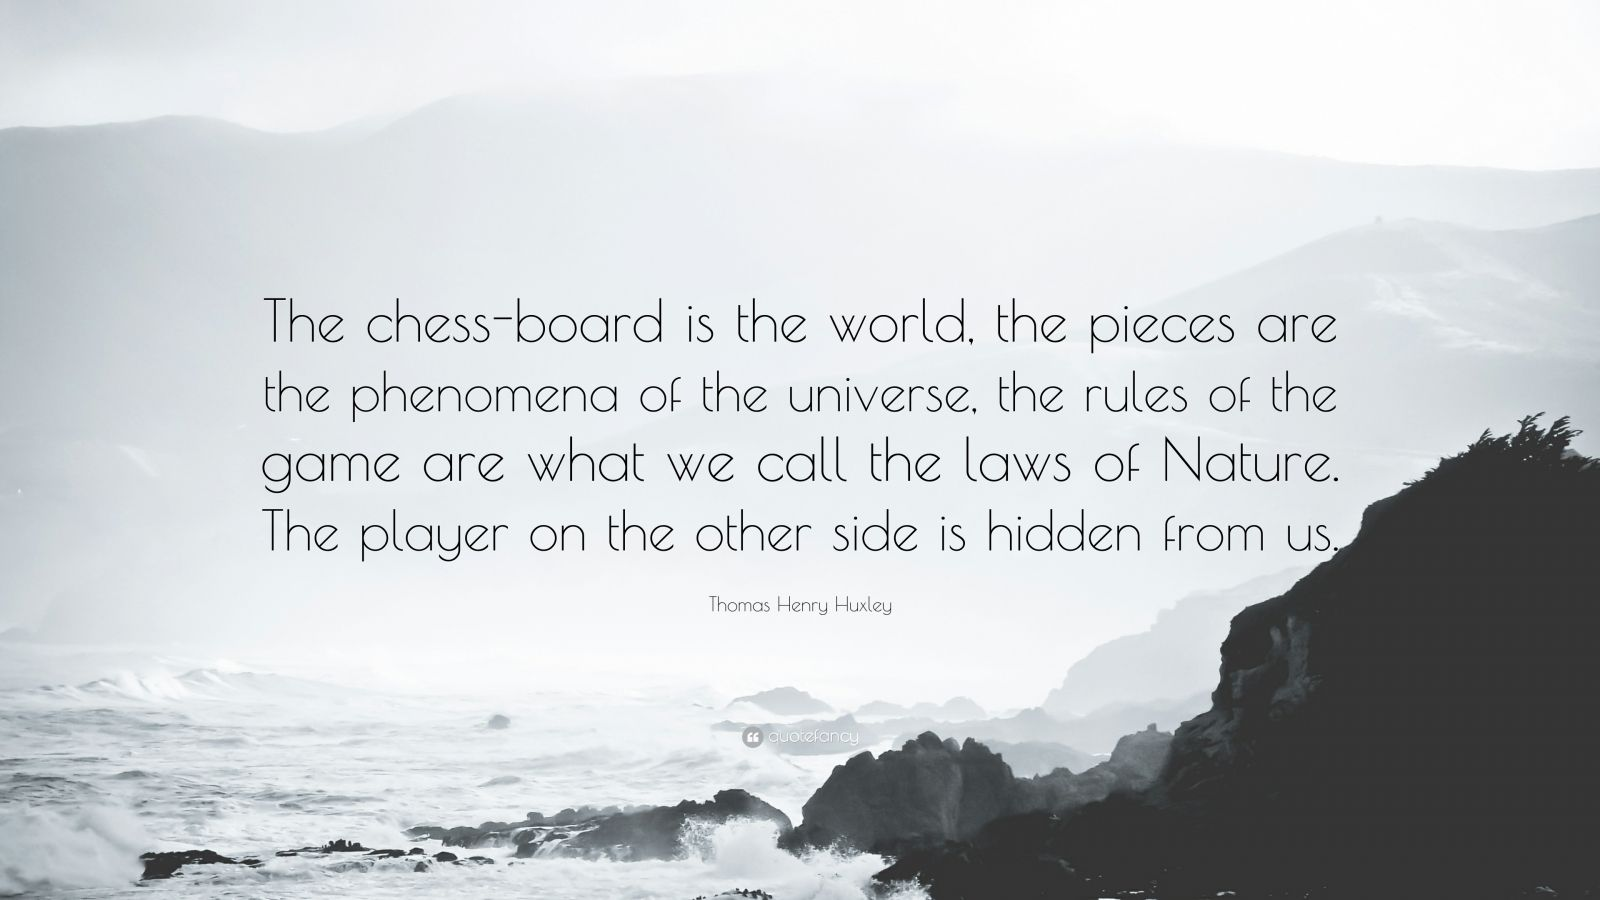 """Thomas Henry Huxley Quote: """"The chess-board is the world, the pieces are the phenomena of the universe, the rules of the game are what we call the laws of Nature. The player on the other side is hidden from us."""""""